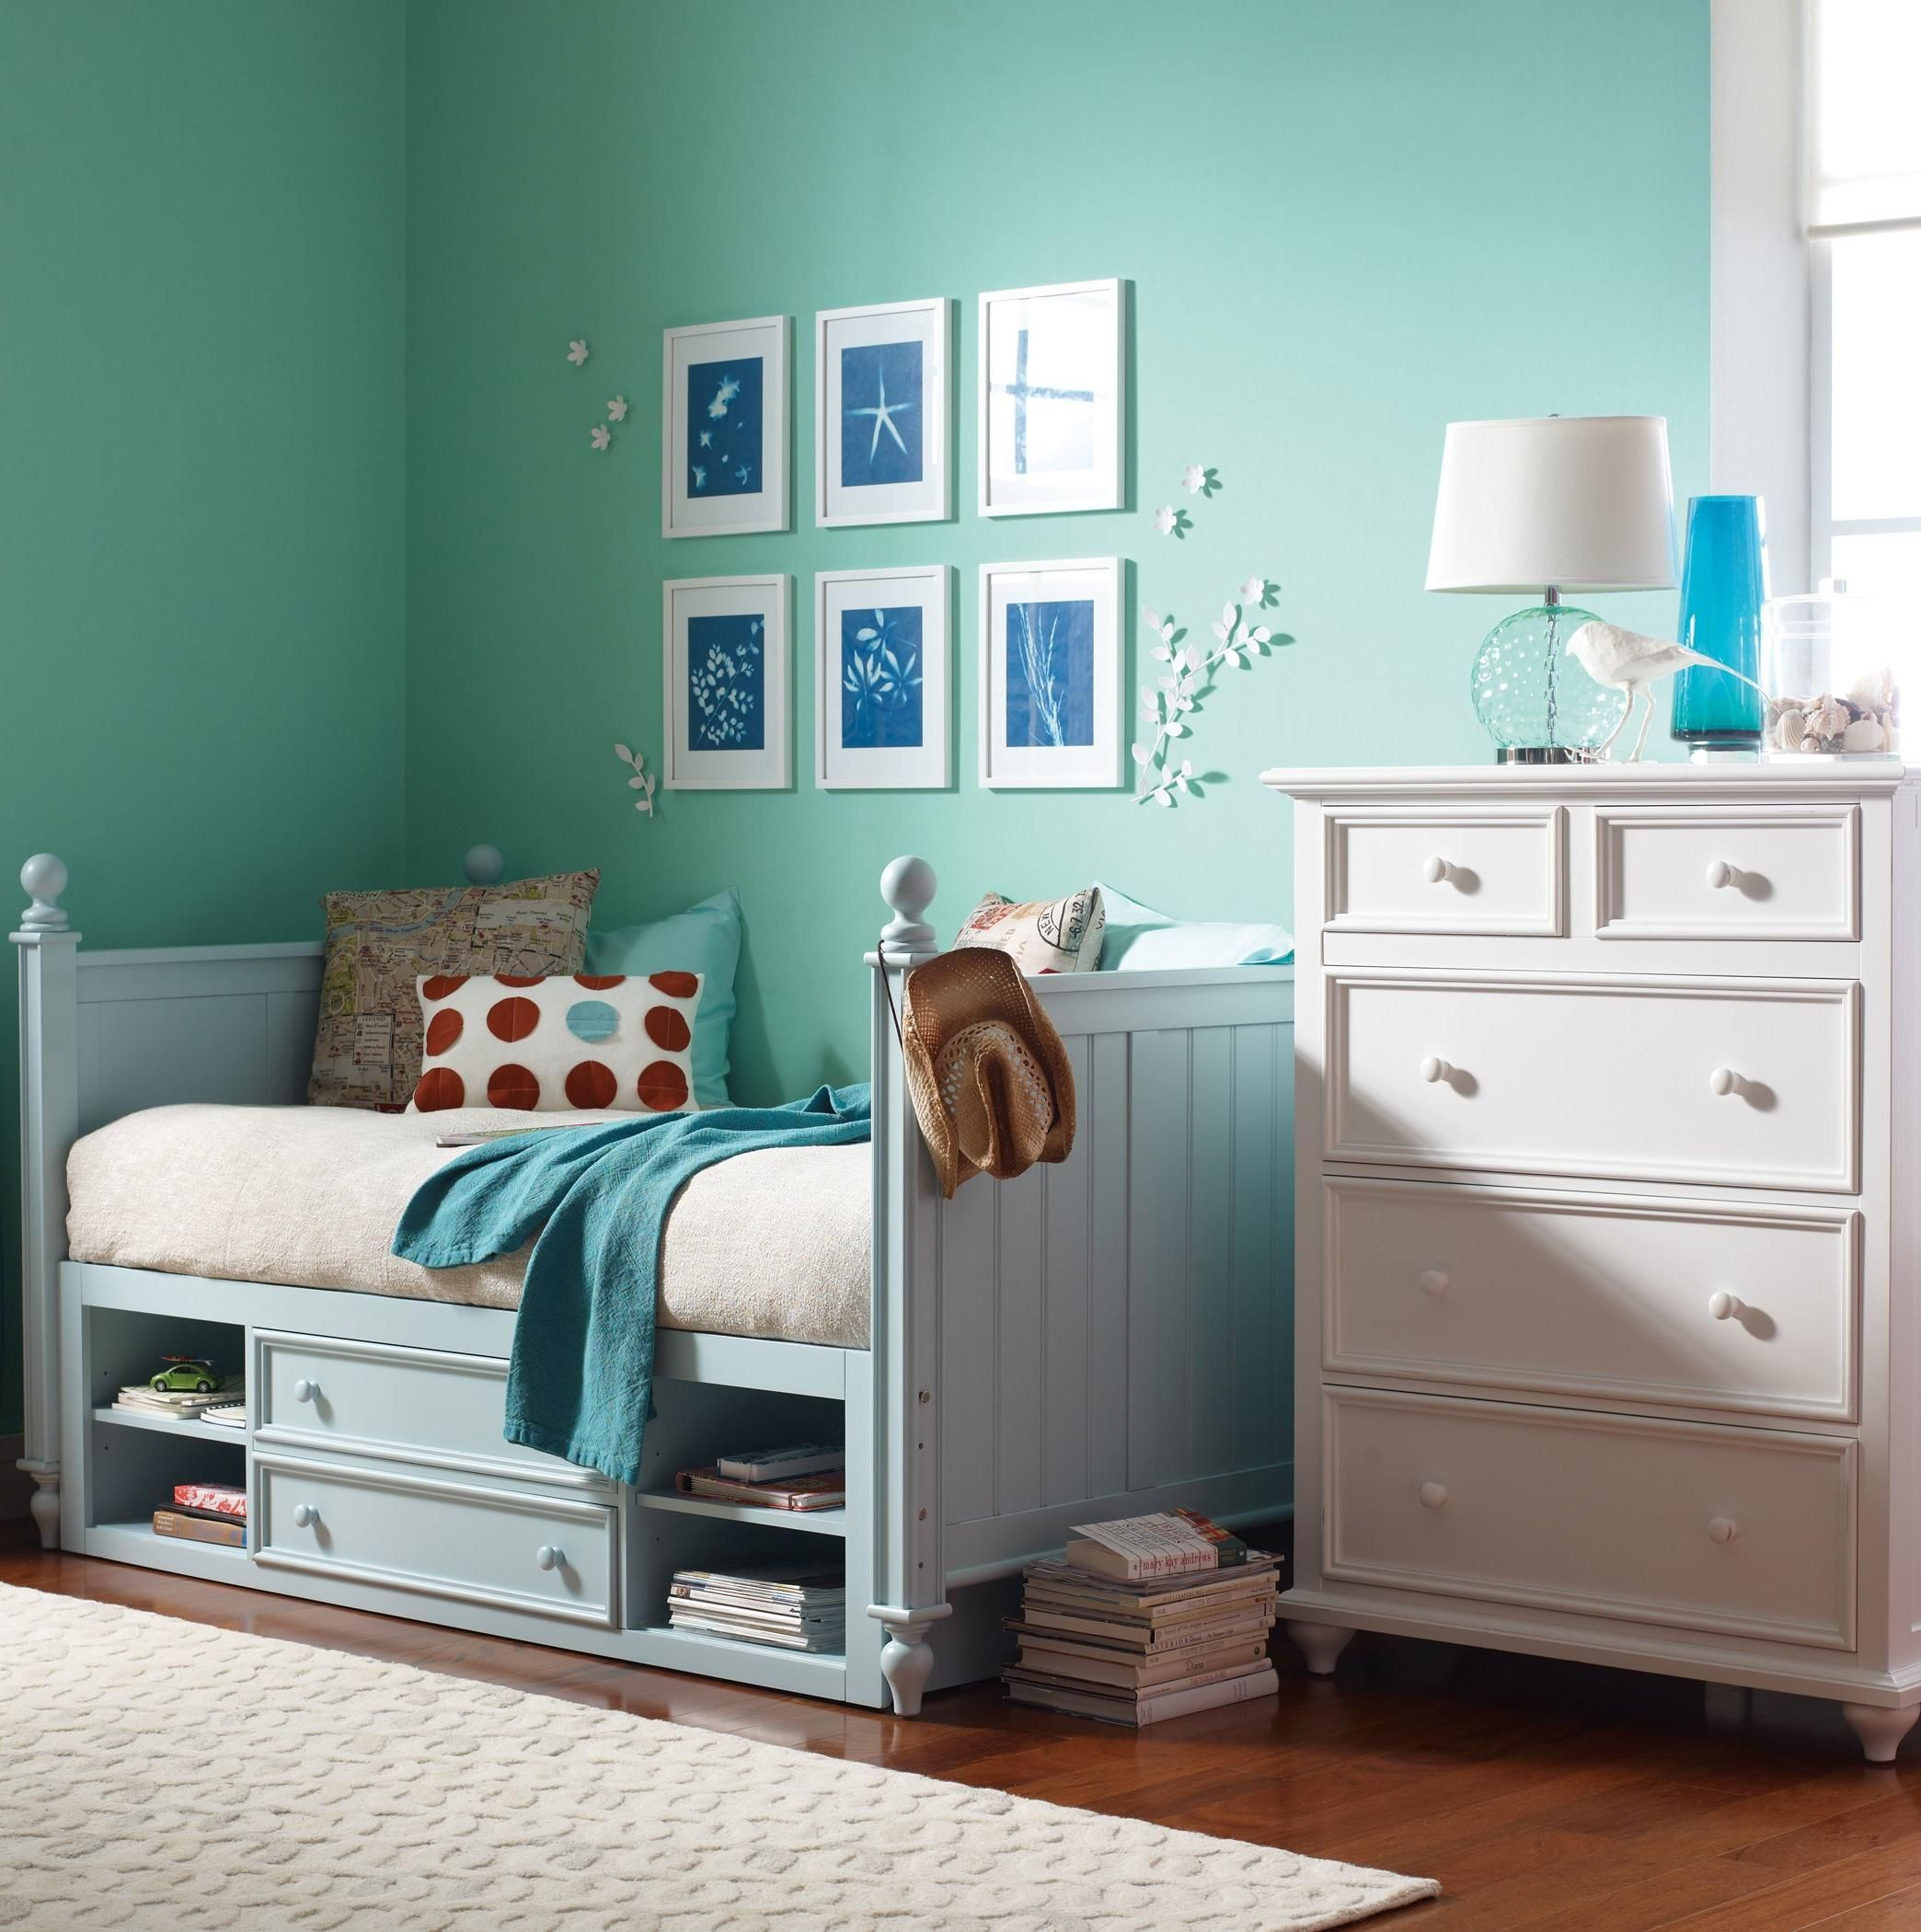 try mixing colors when it comes to kids room furniture. this fun